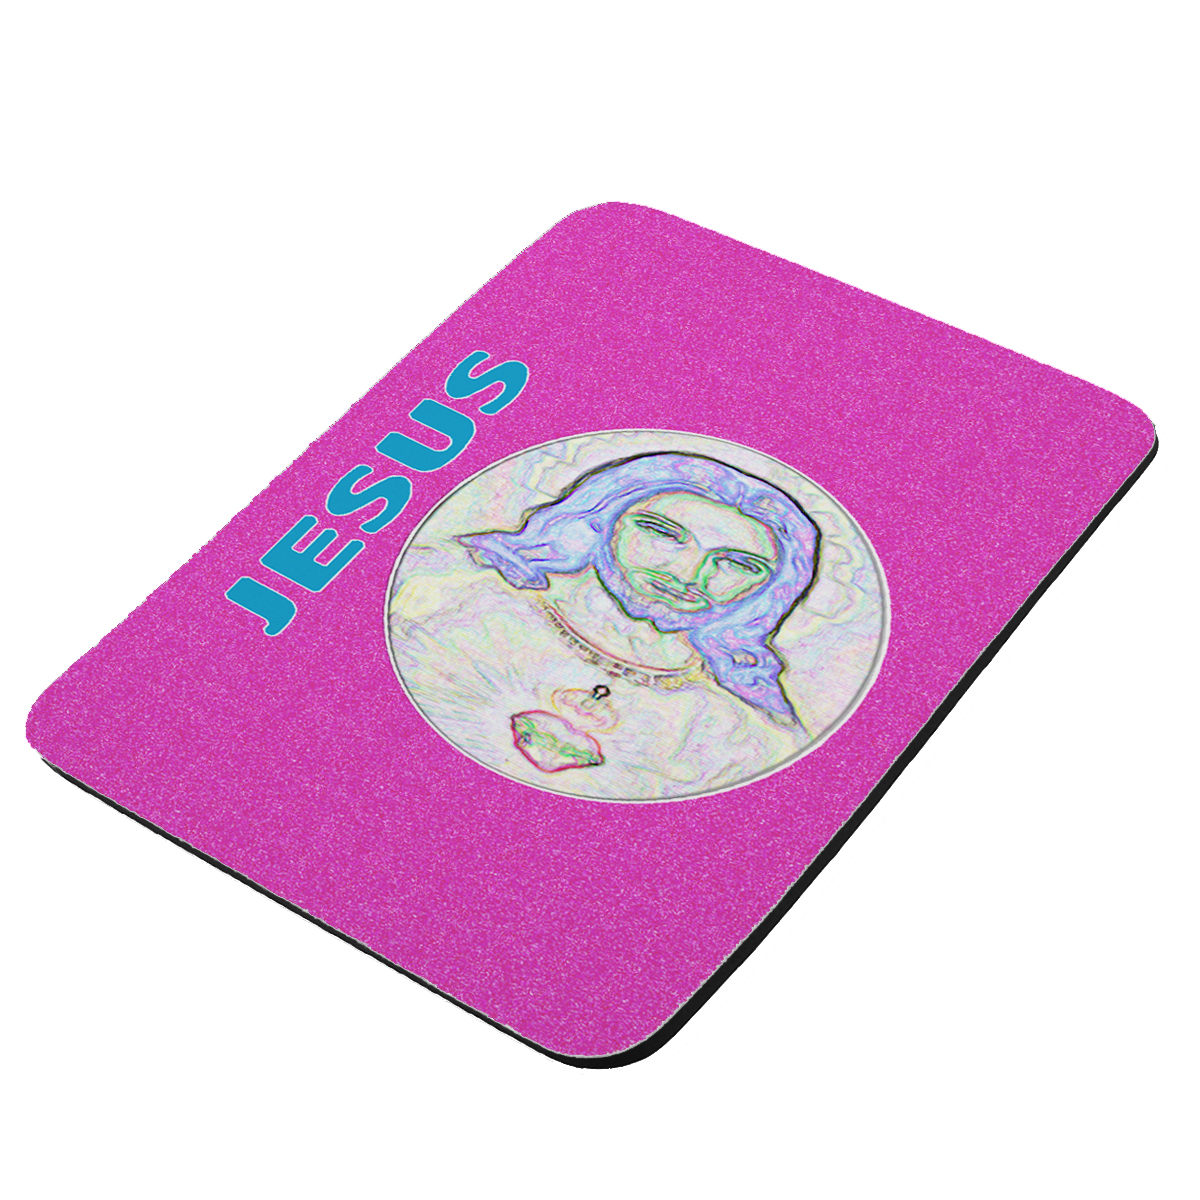 Electric Jesus Pink - KuzmarK Mousepad / Hot Pad / Trivet